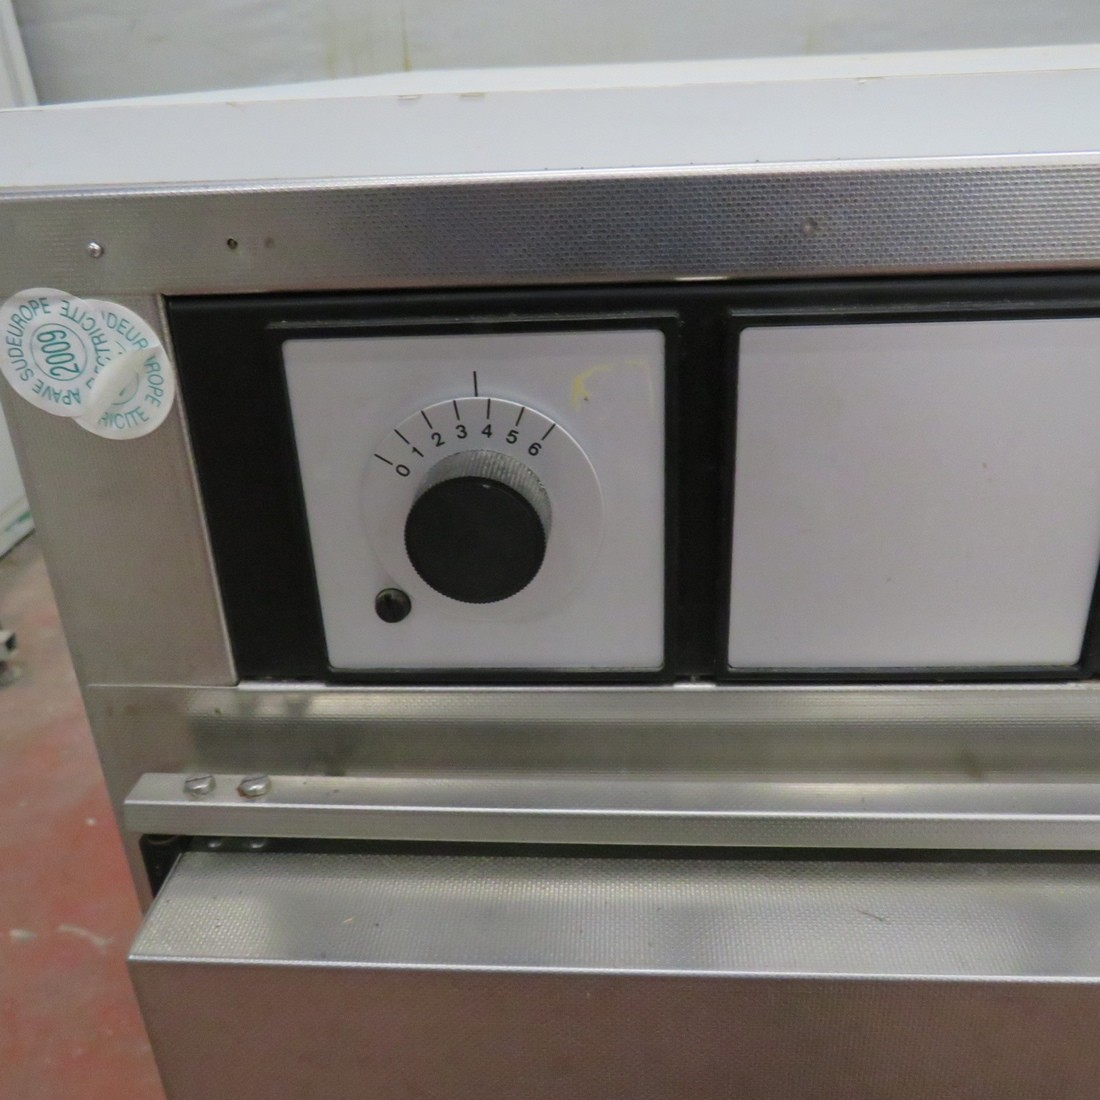 R1L1138 Stainless steel MEMMERT electric oven B50 type - 200 liters - 1600 W